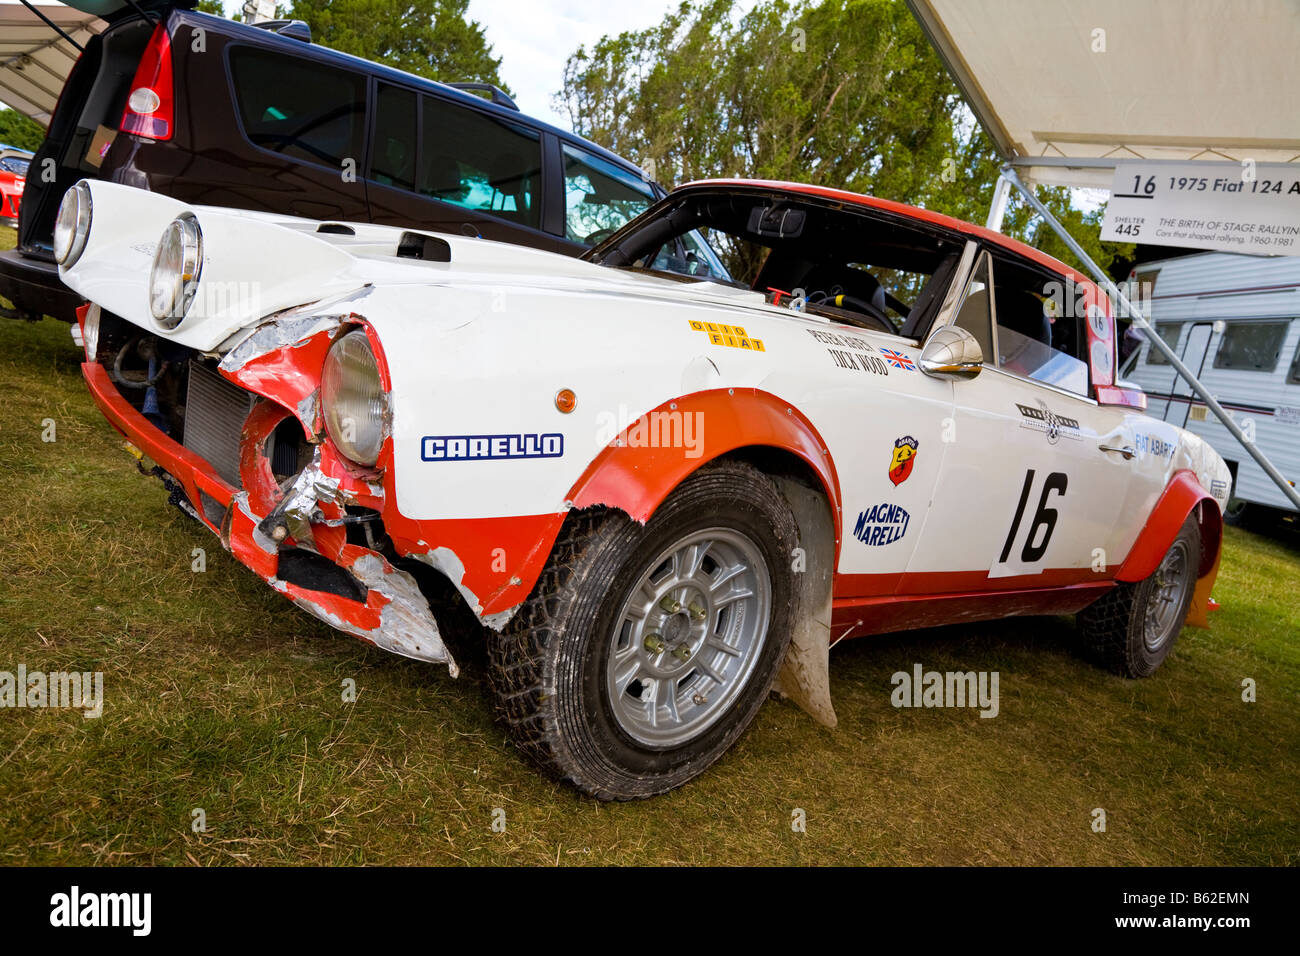 A Very Damaged 1975 Fiat 124 Abarth Rally Car In The Paddock At